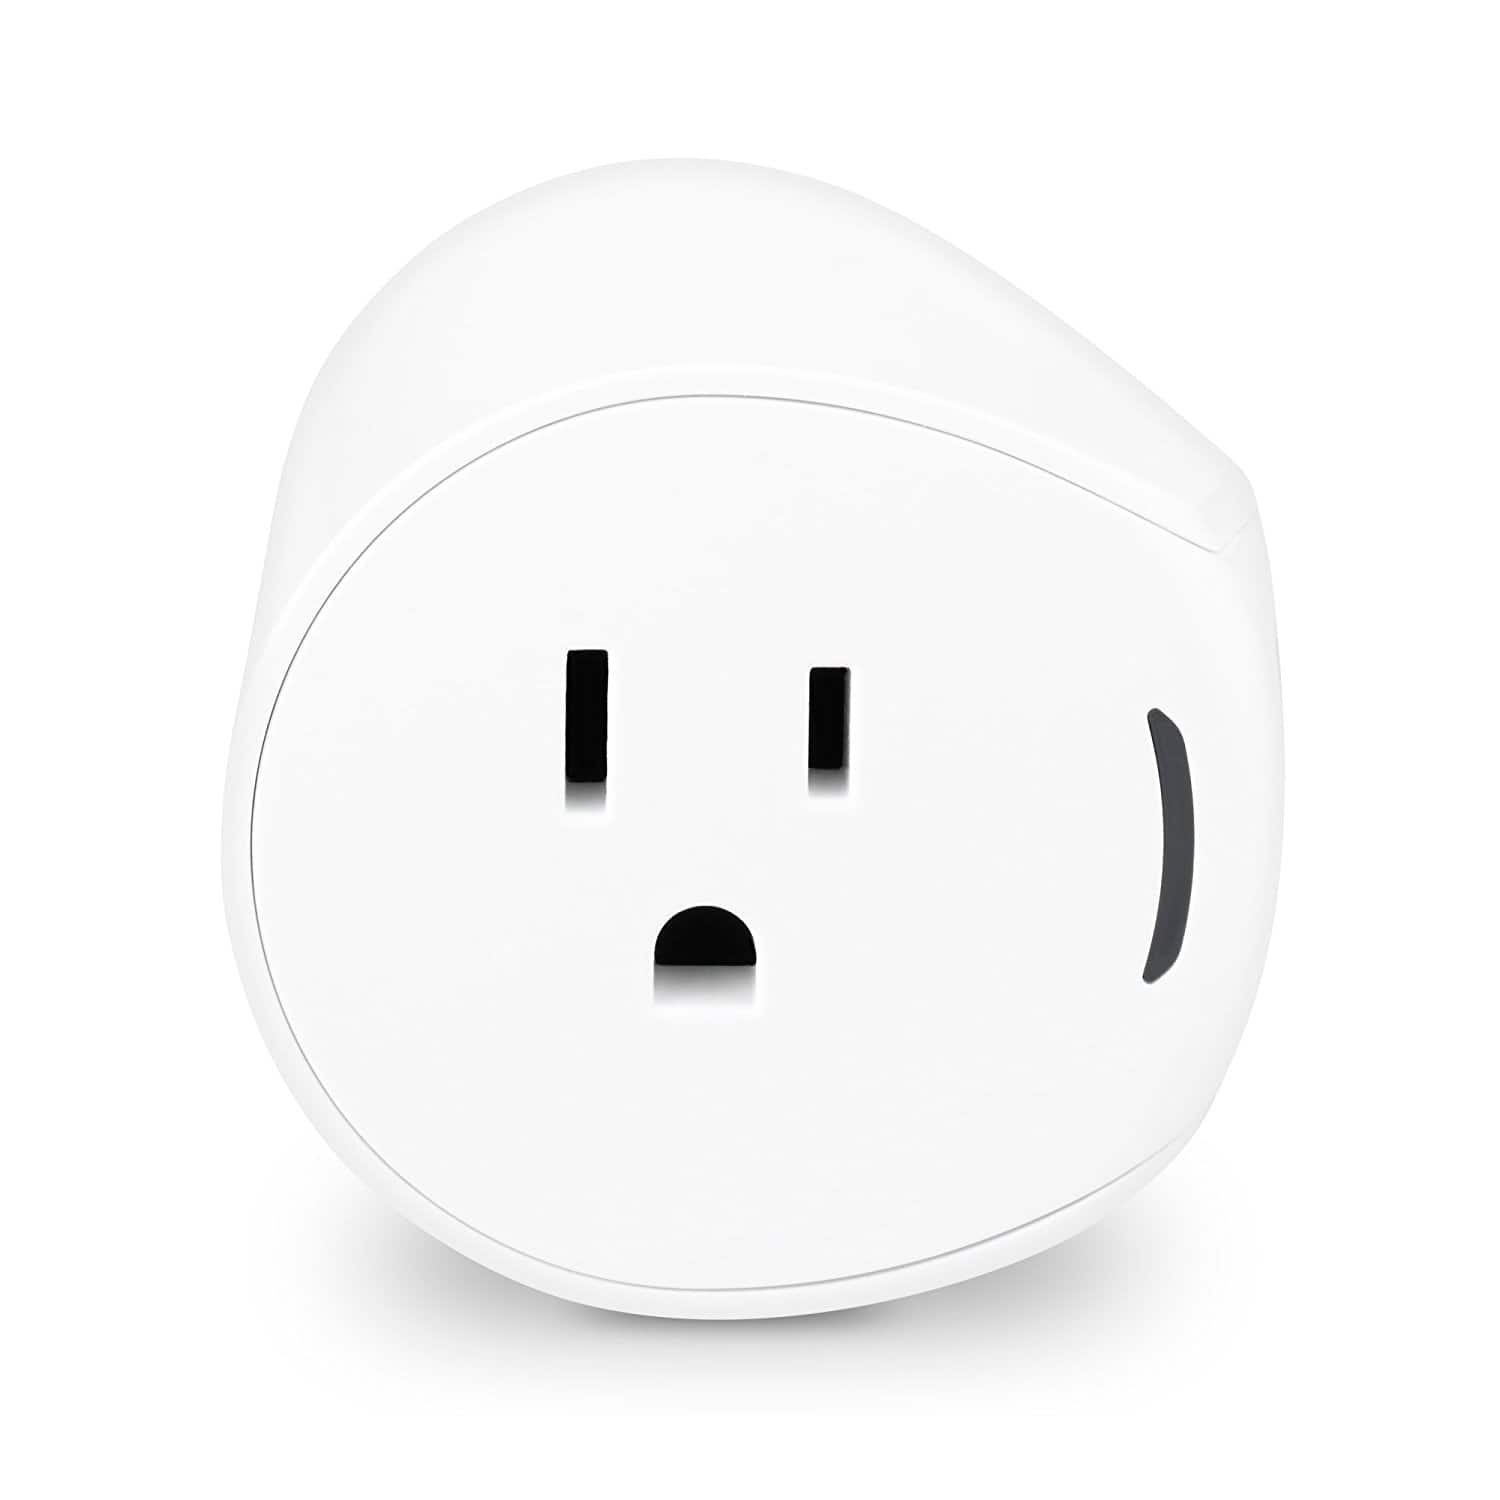 Samsung SmartThings Outlet, F-OUT-US-2, Works with Amazon Alexa $22.49